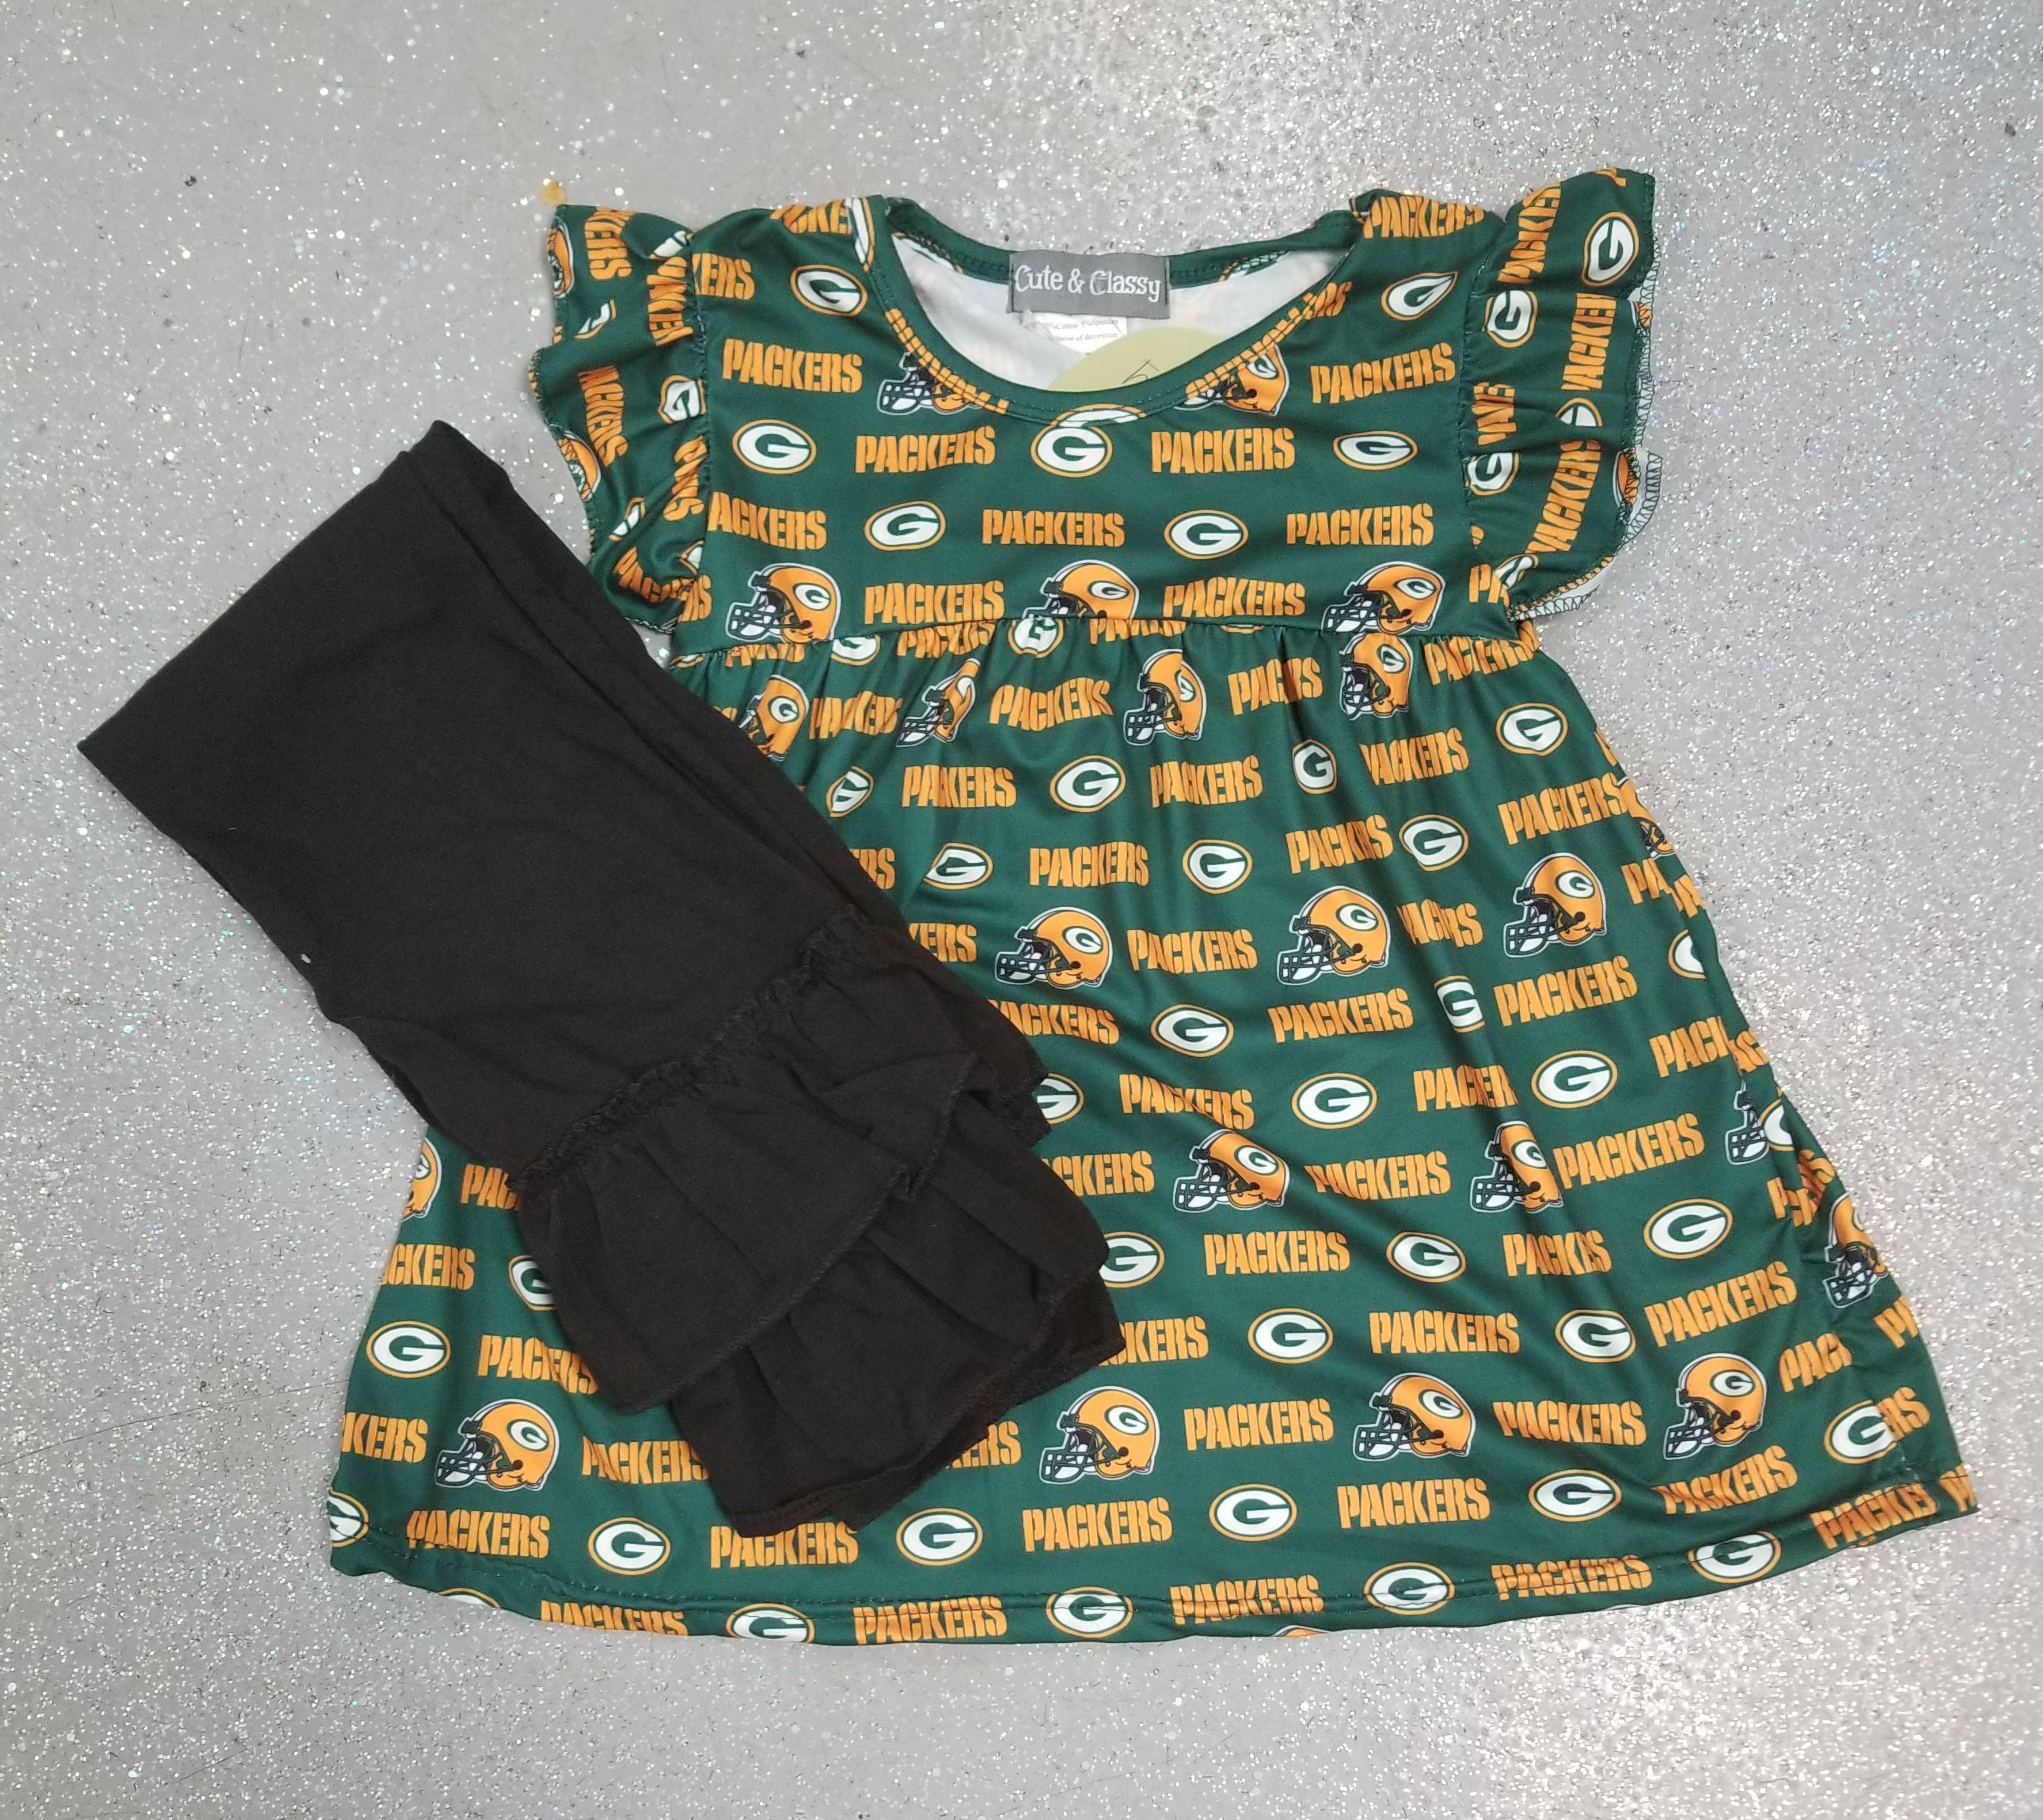 Go Pack Go The Stunning Olya Jakubowski Greenbaypackers Packers Greenbay Green Bay Packers Girl Cheerleading Outfits Green Bay Packers Fans